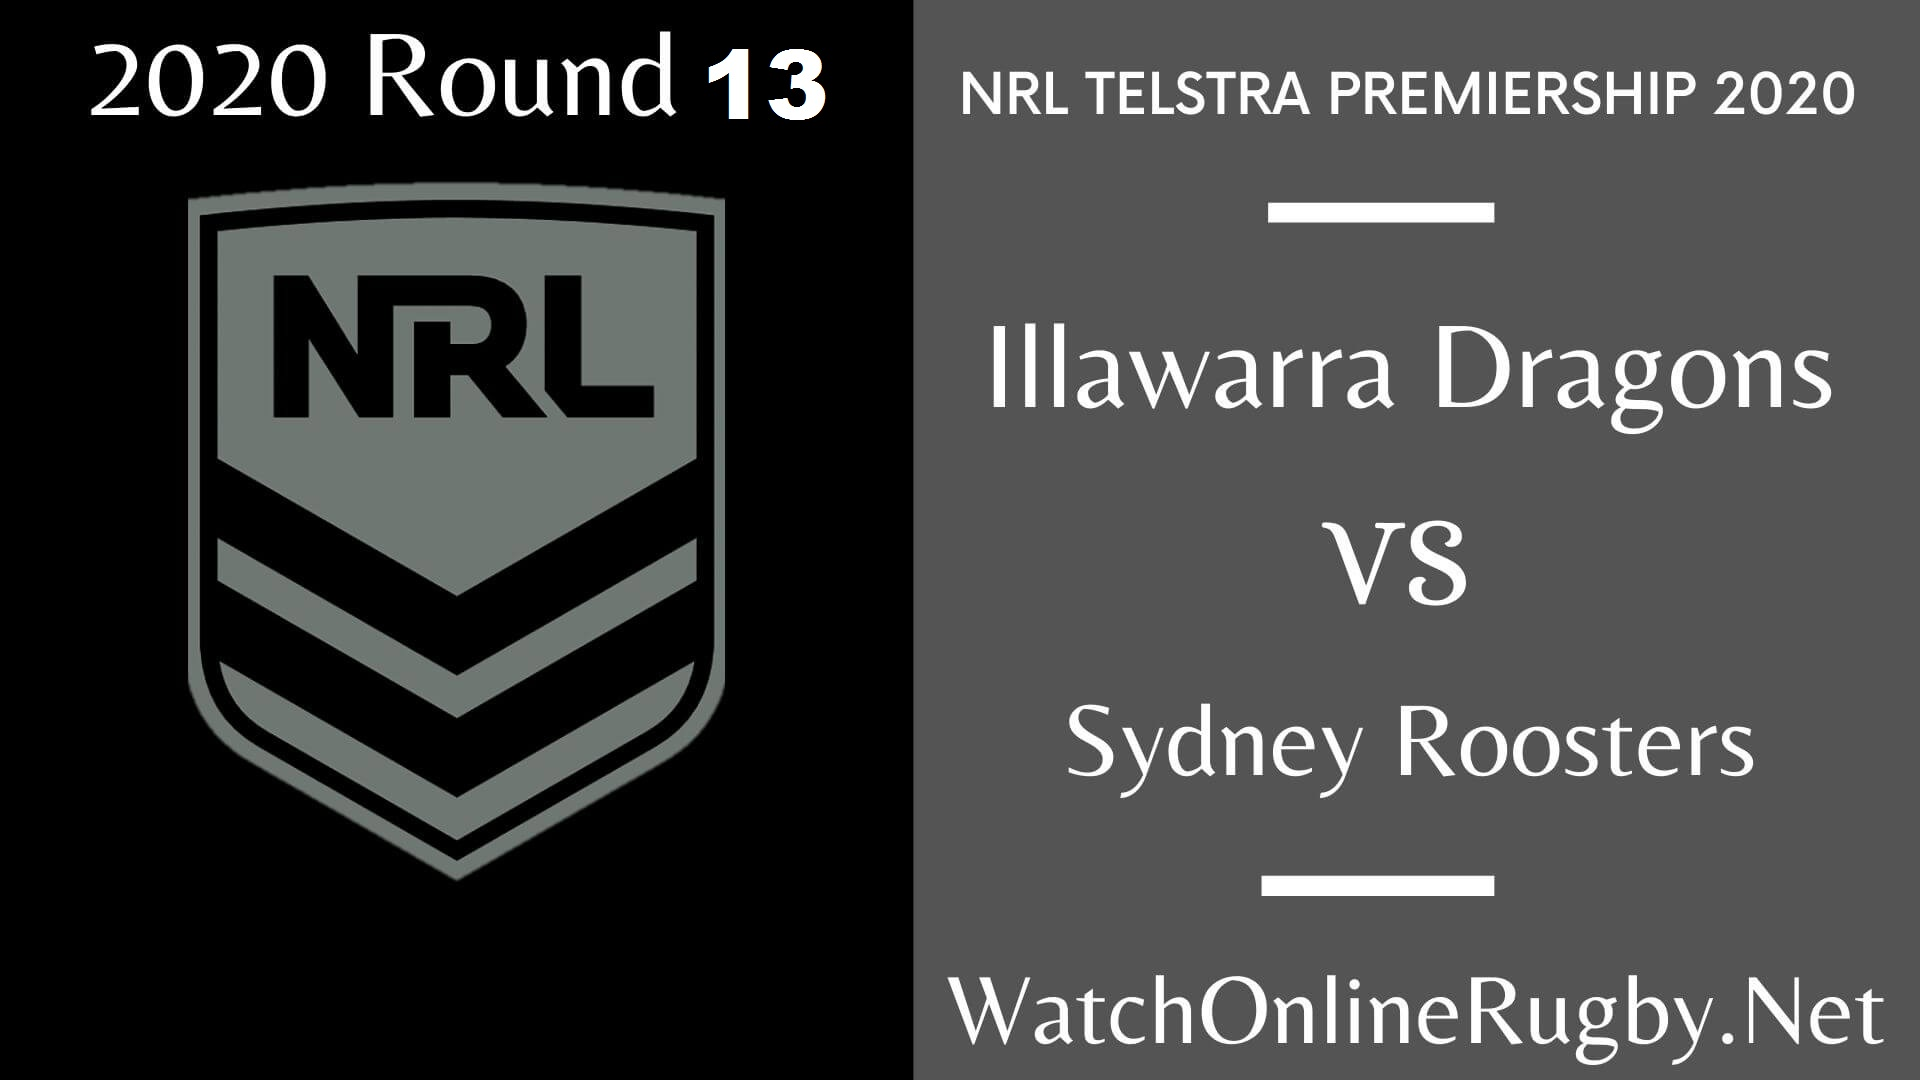 Illawarra Dragons Vs Sydney Roosters Highlights 2020 Round 13 Nrl Rugby